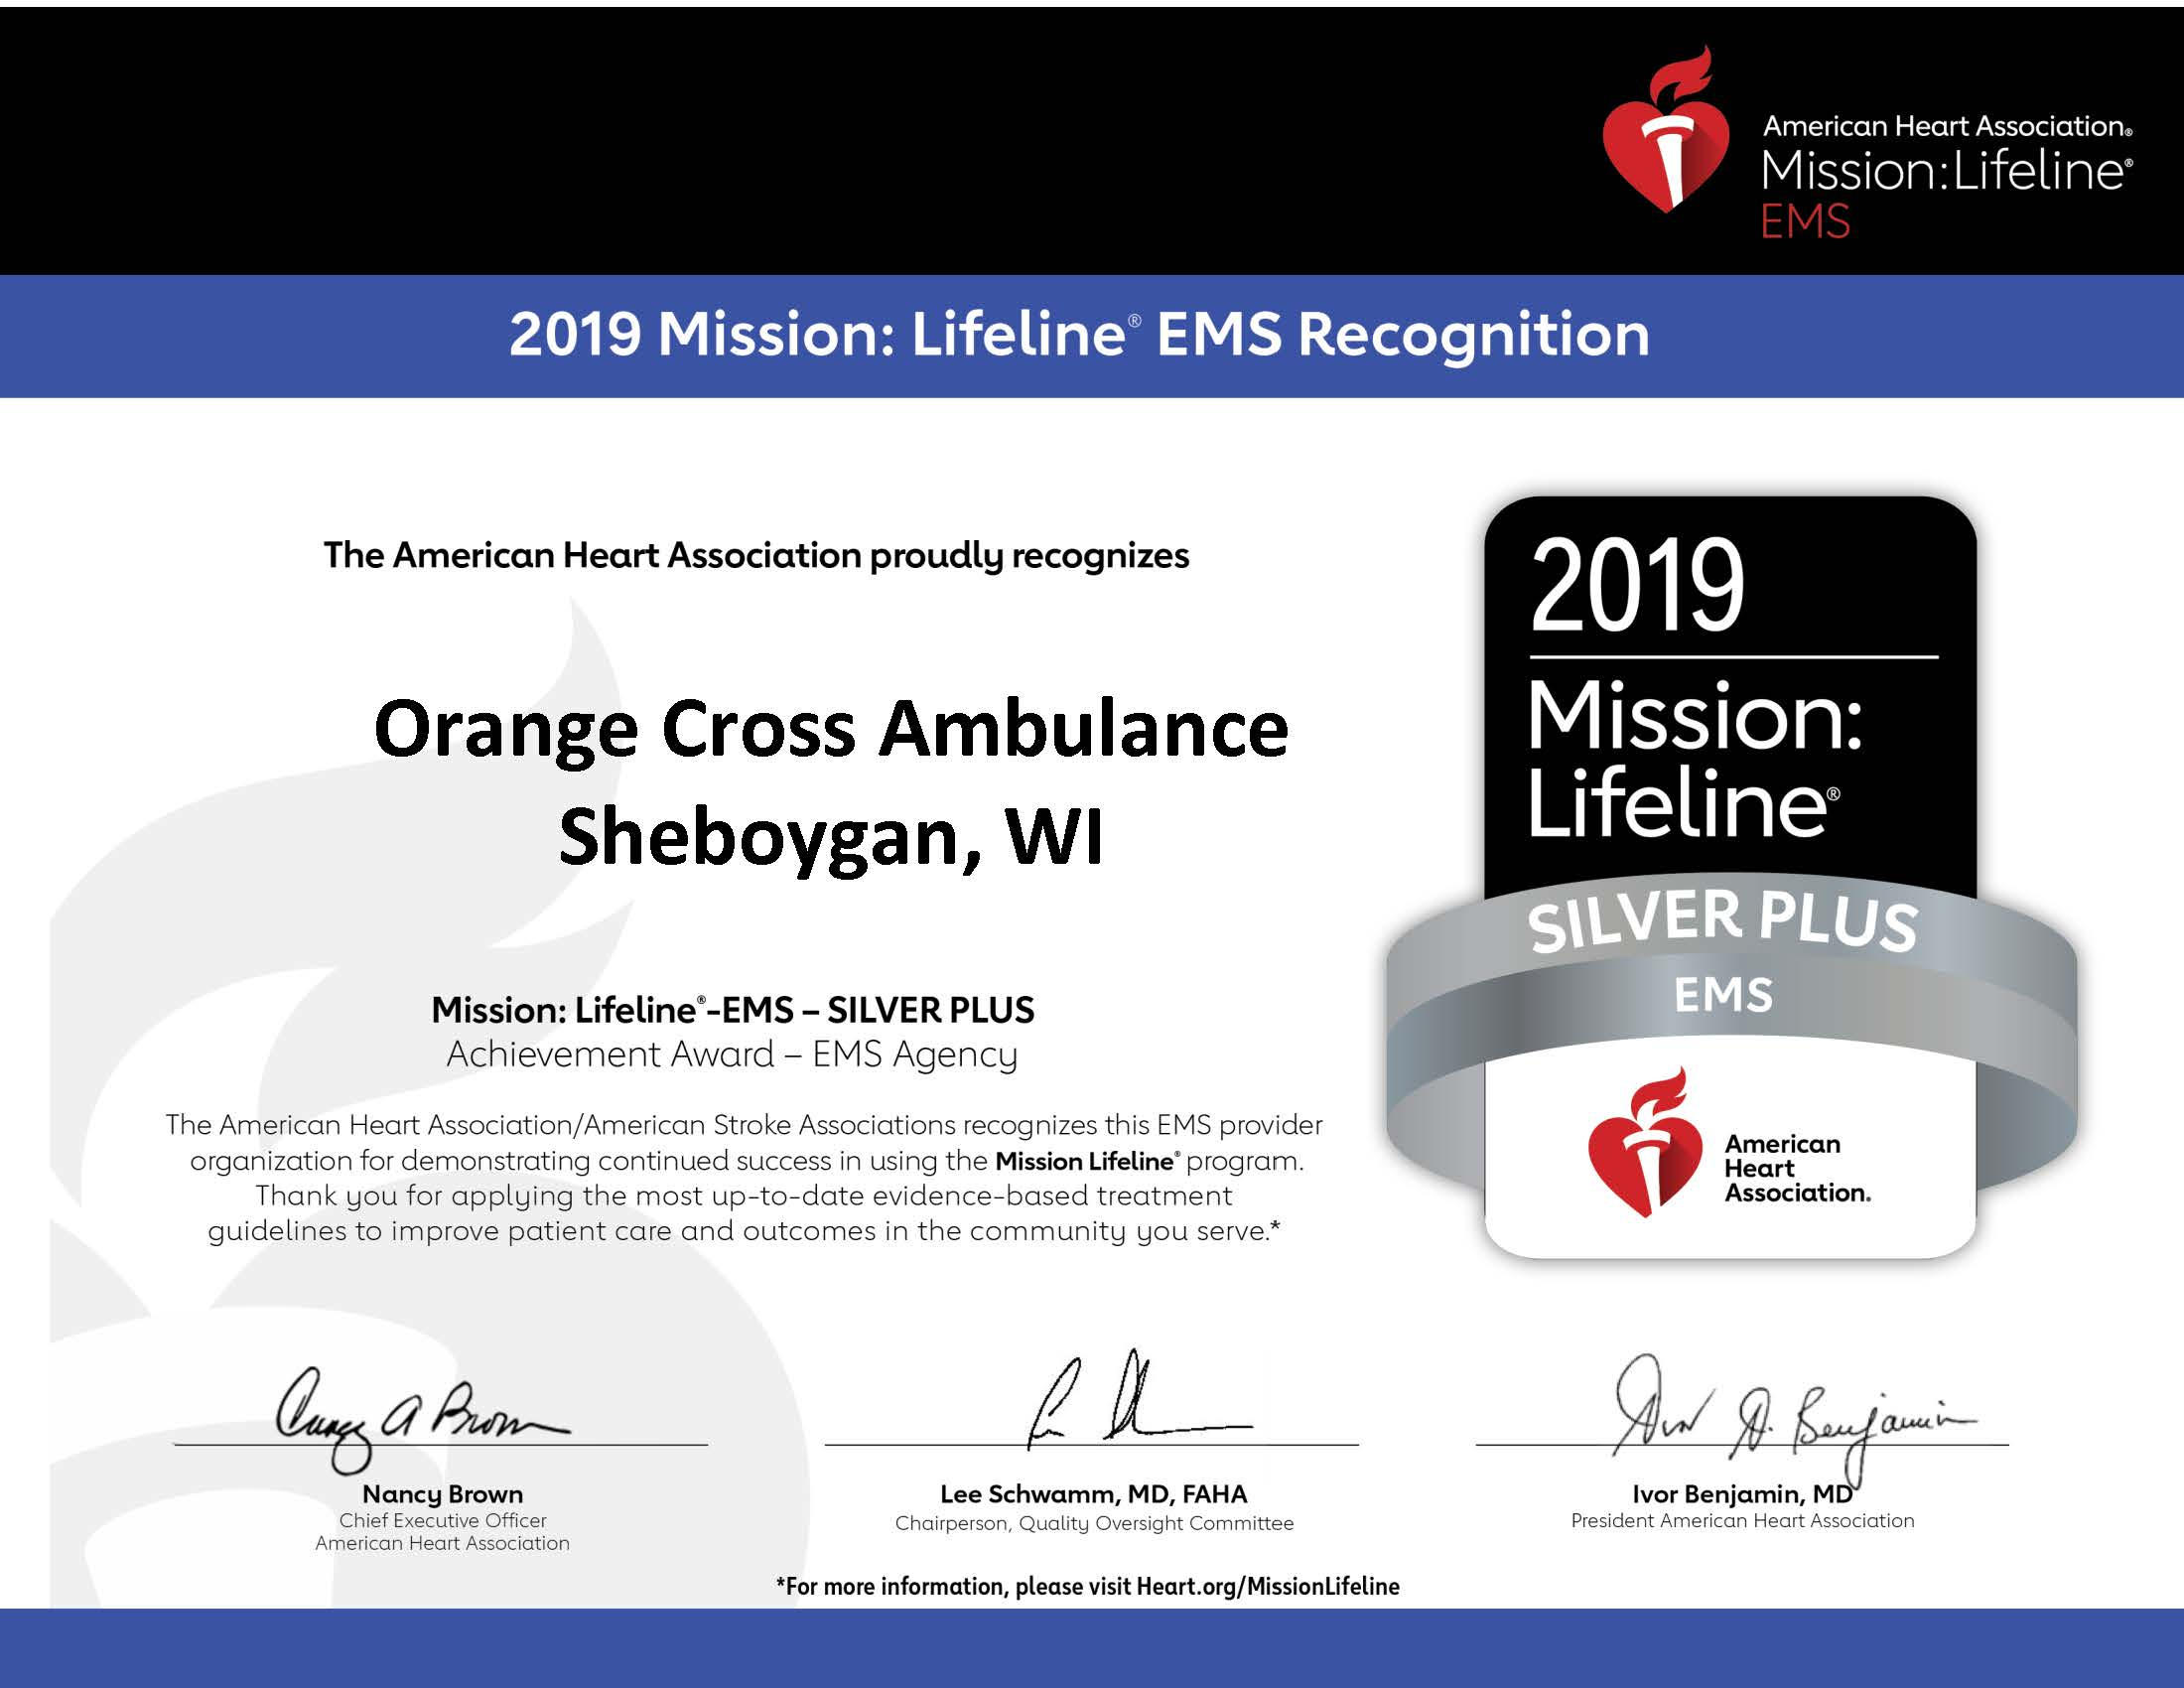 Our participation in Mission: Lifeline® demonstrates our commitment to quality care. We are proud to be a part of the American Heart Association's® efforts to turn guidelines into lifelines.